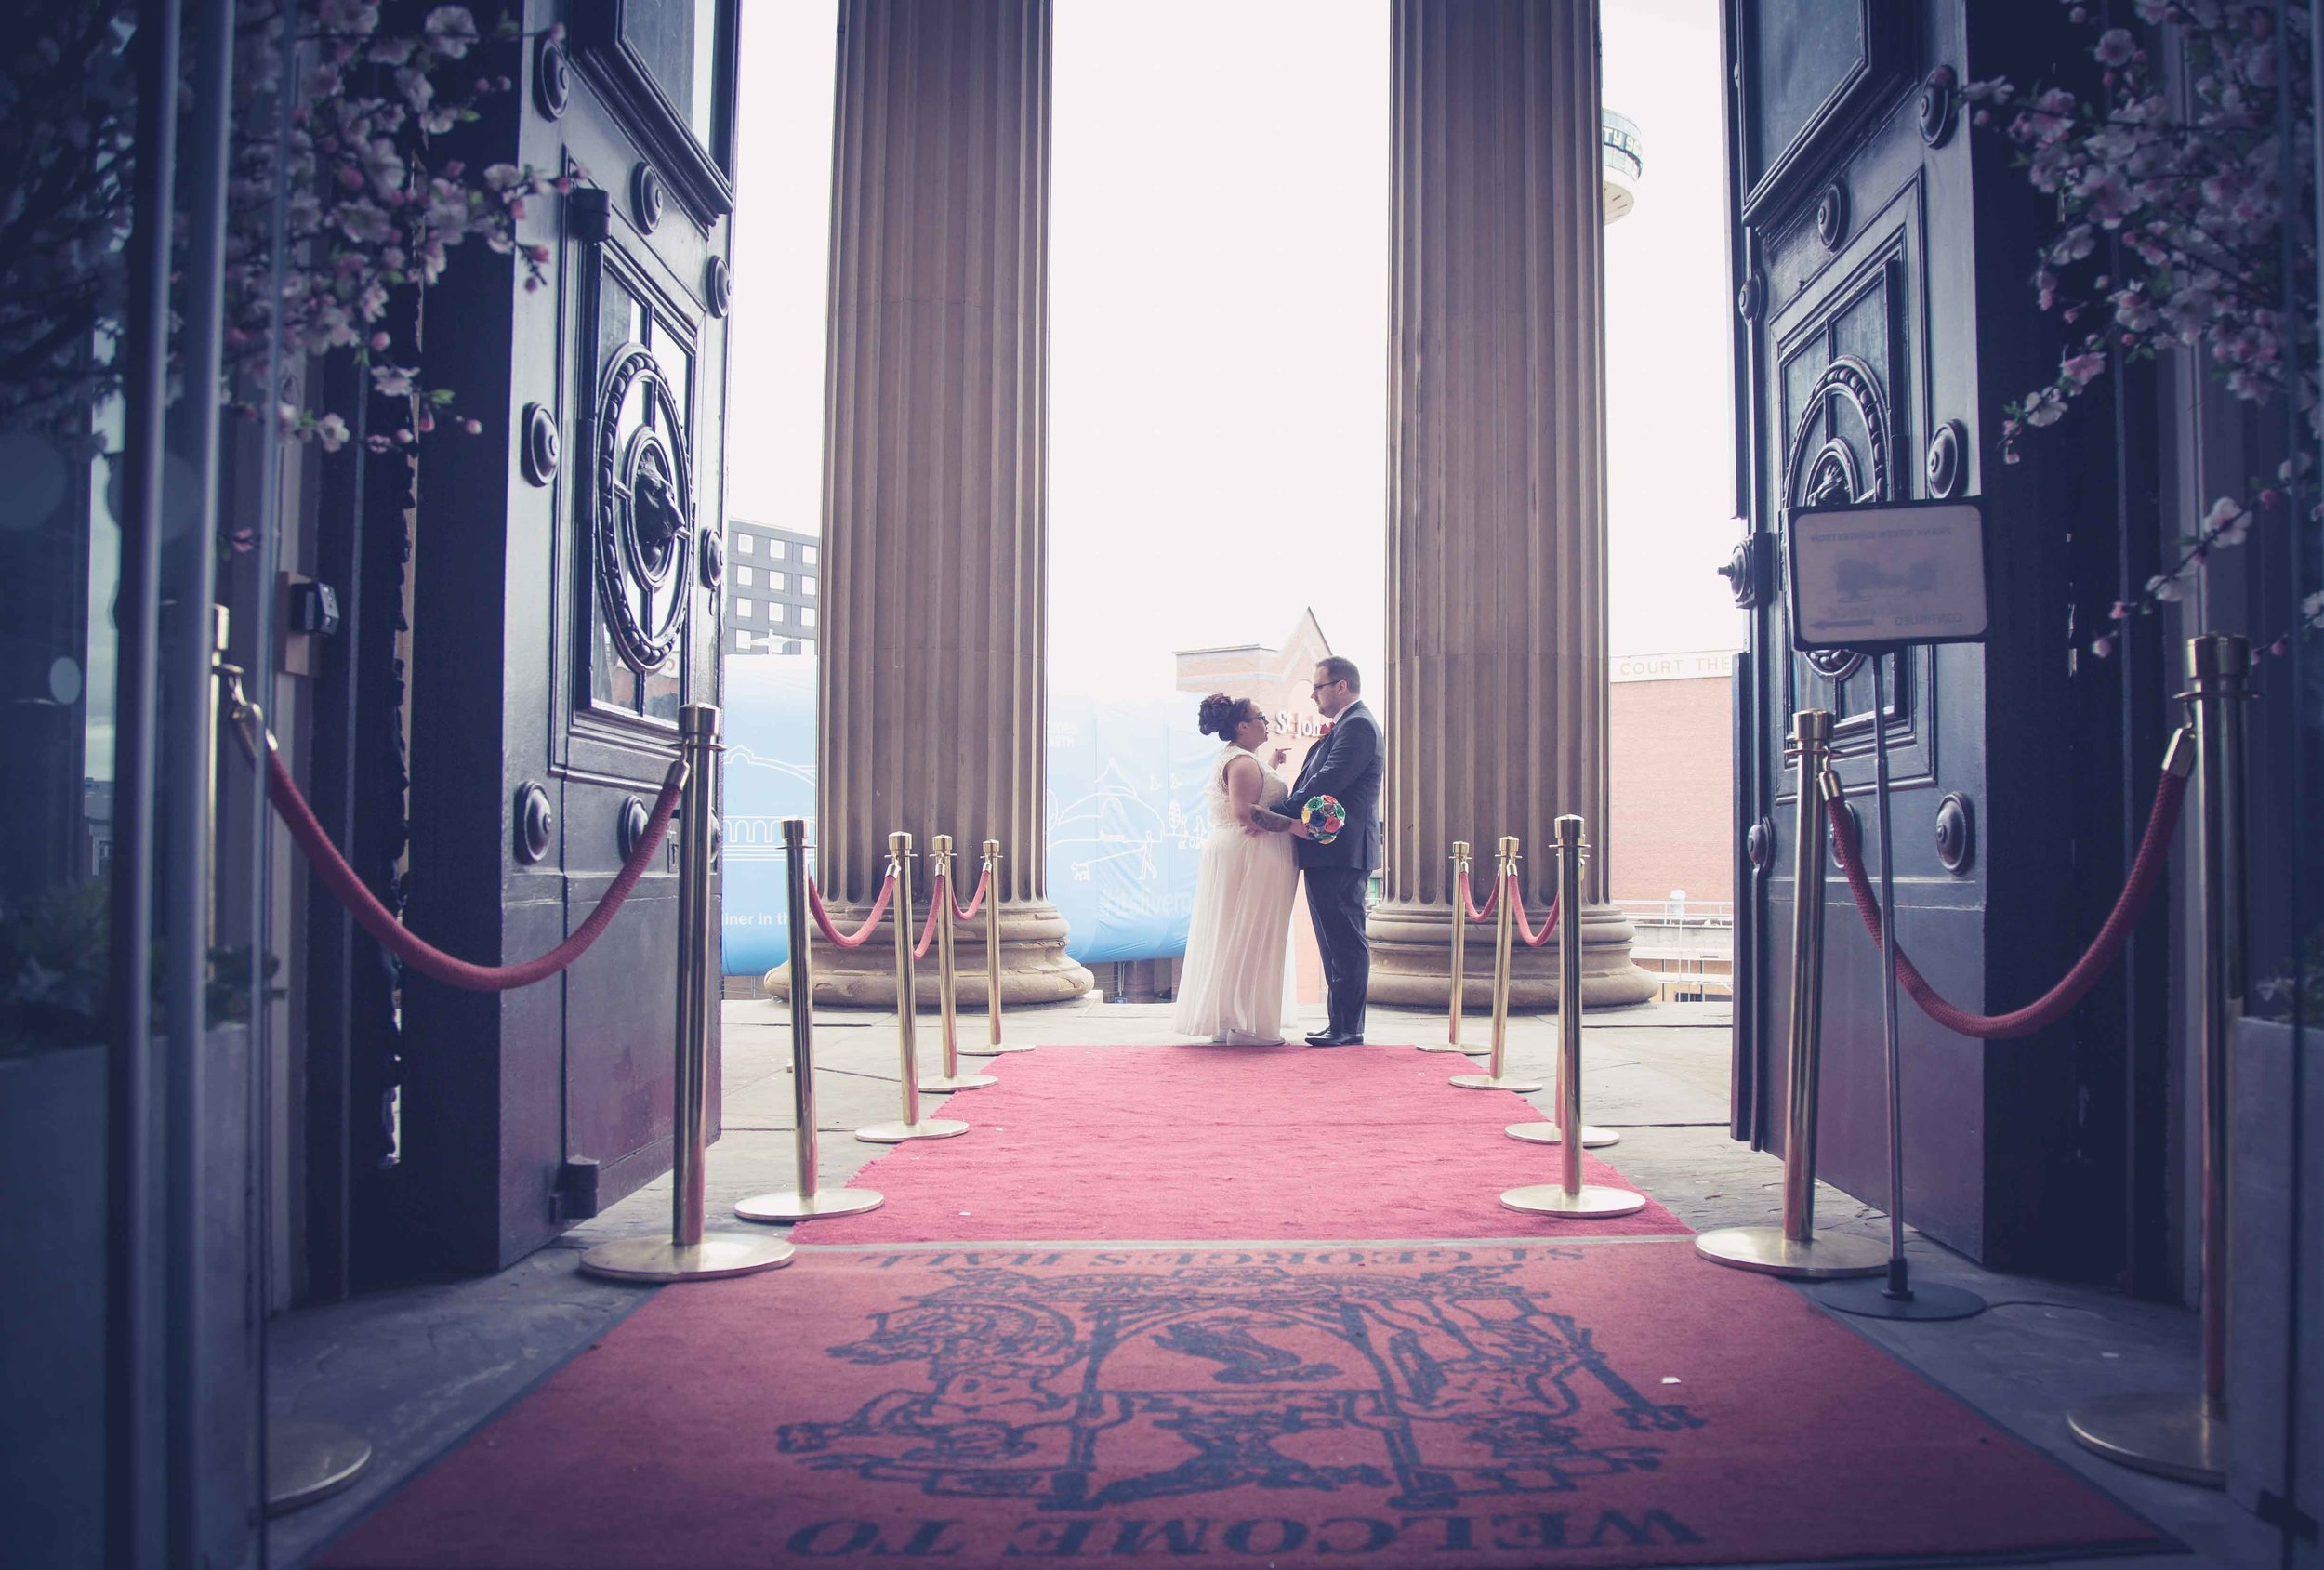 St georges hall wedding  (1 of 1)-53.jpg